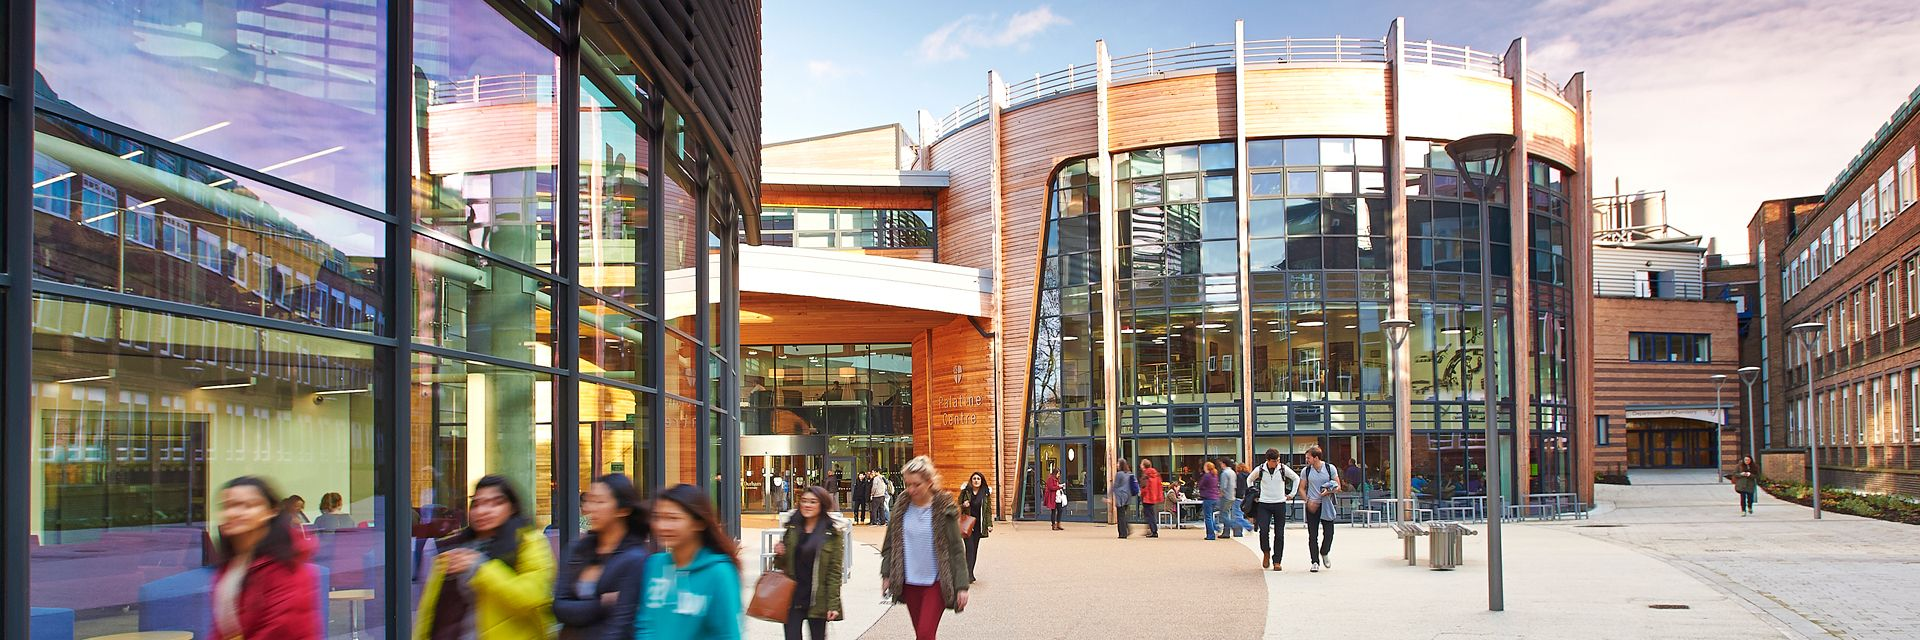 The exterior of the Palatine Centre, bustling with students between lessons